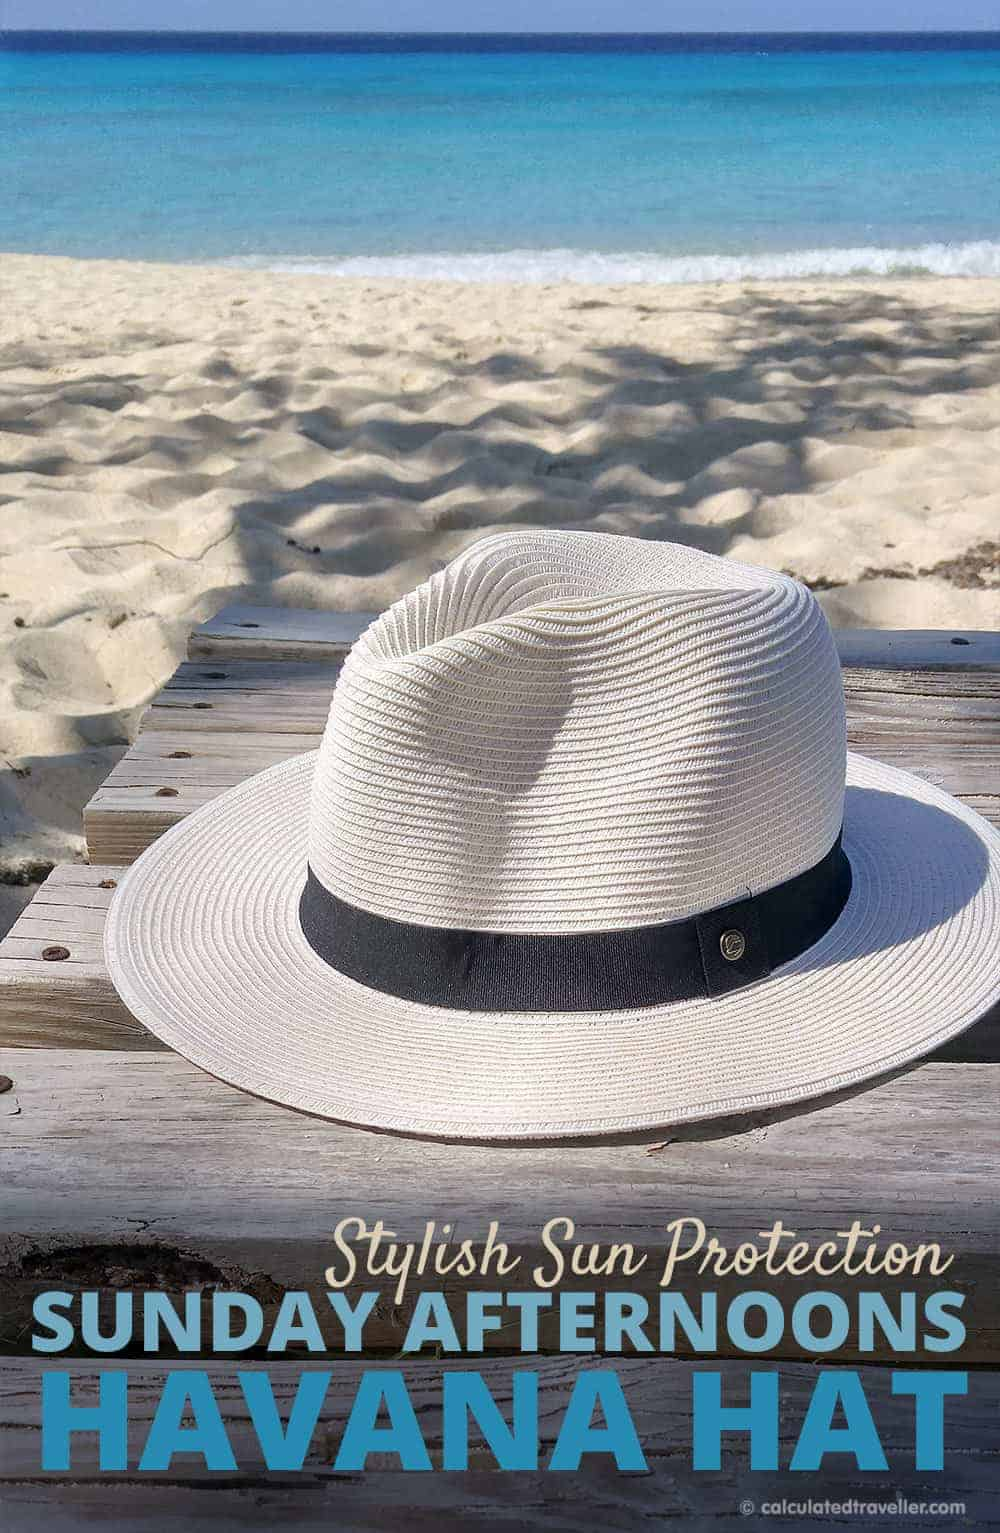 517bbe7677c20 Stylish Sun Protection with the Sunday Afternoons Havana Hat Review by  Calculated Traveller